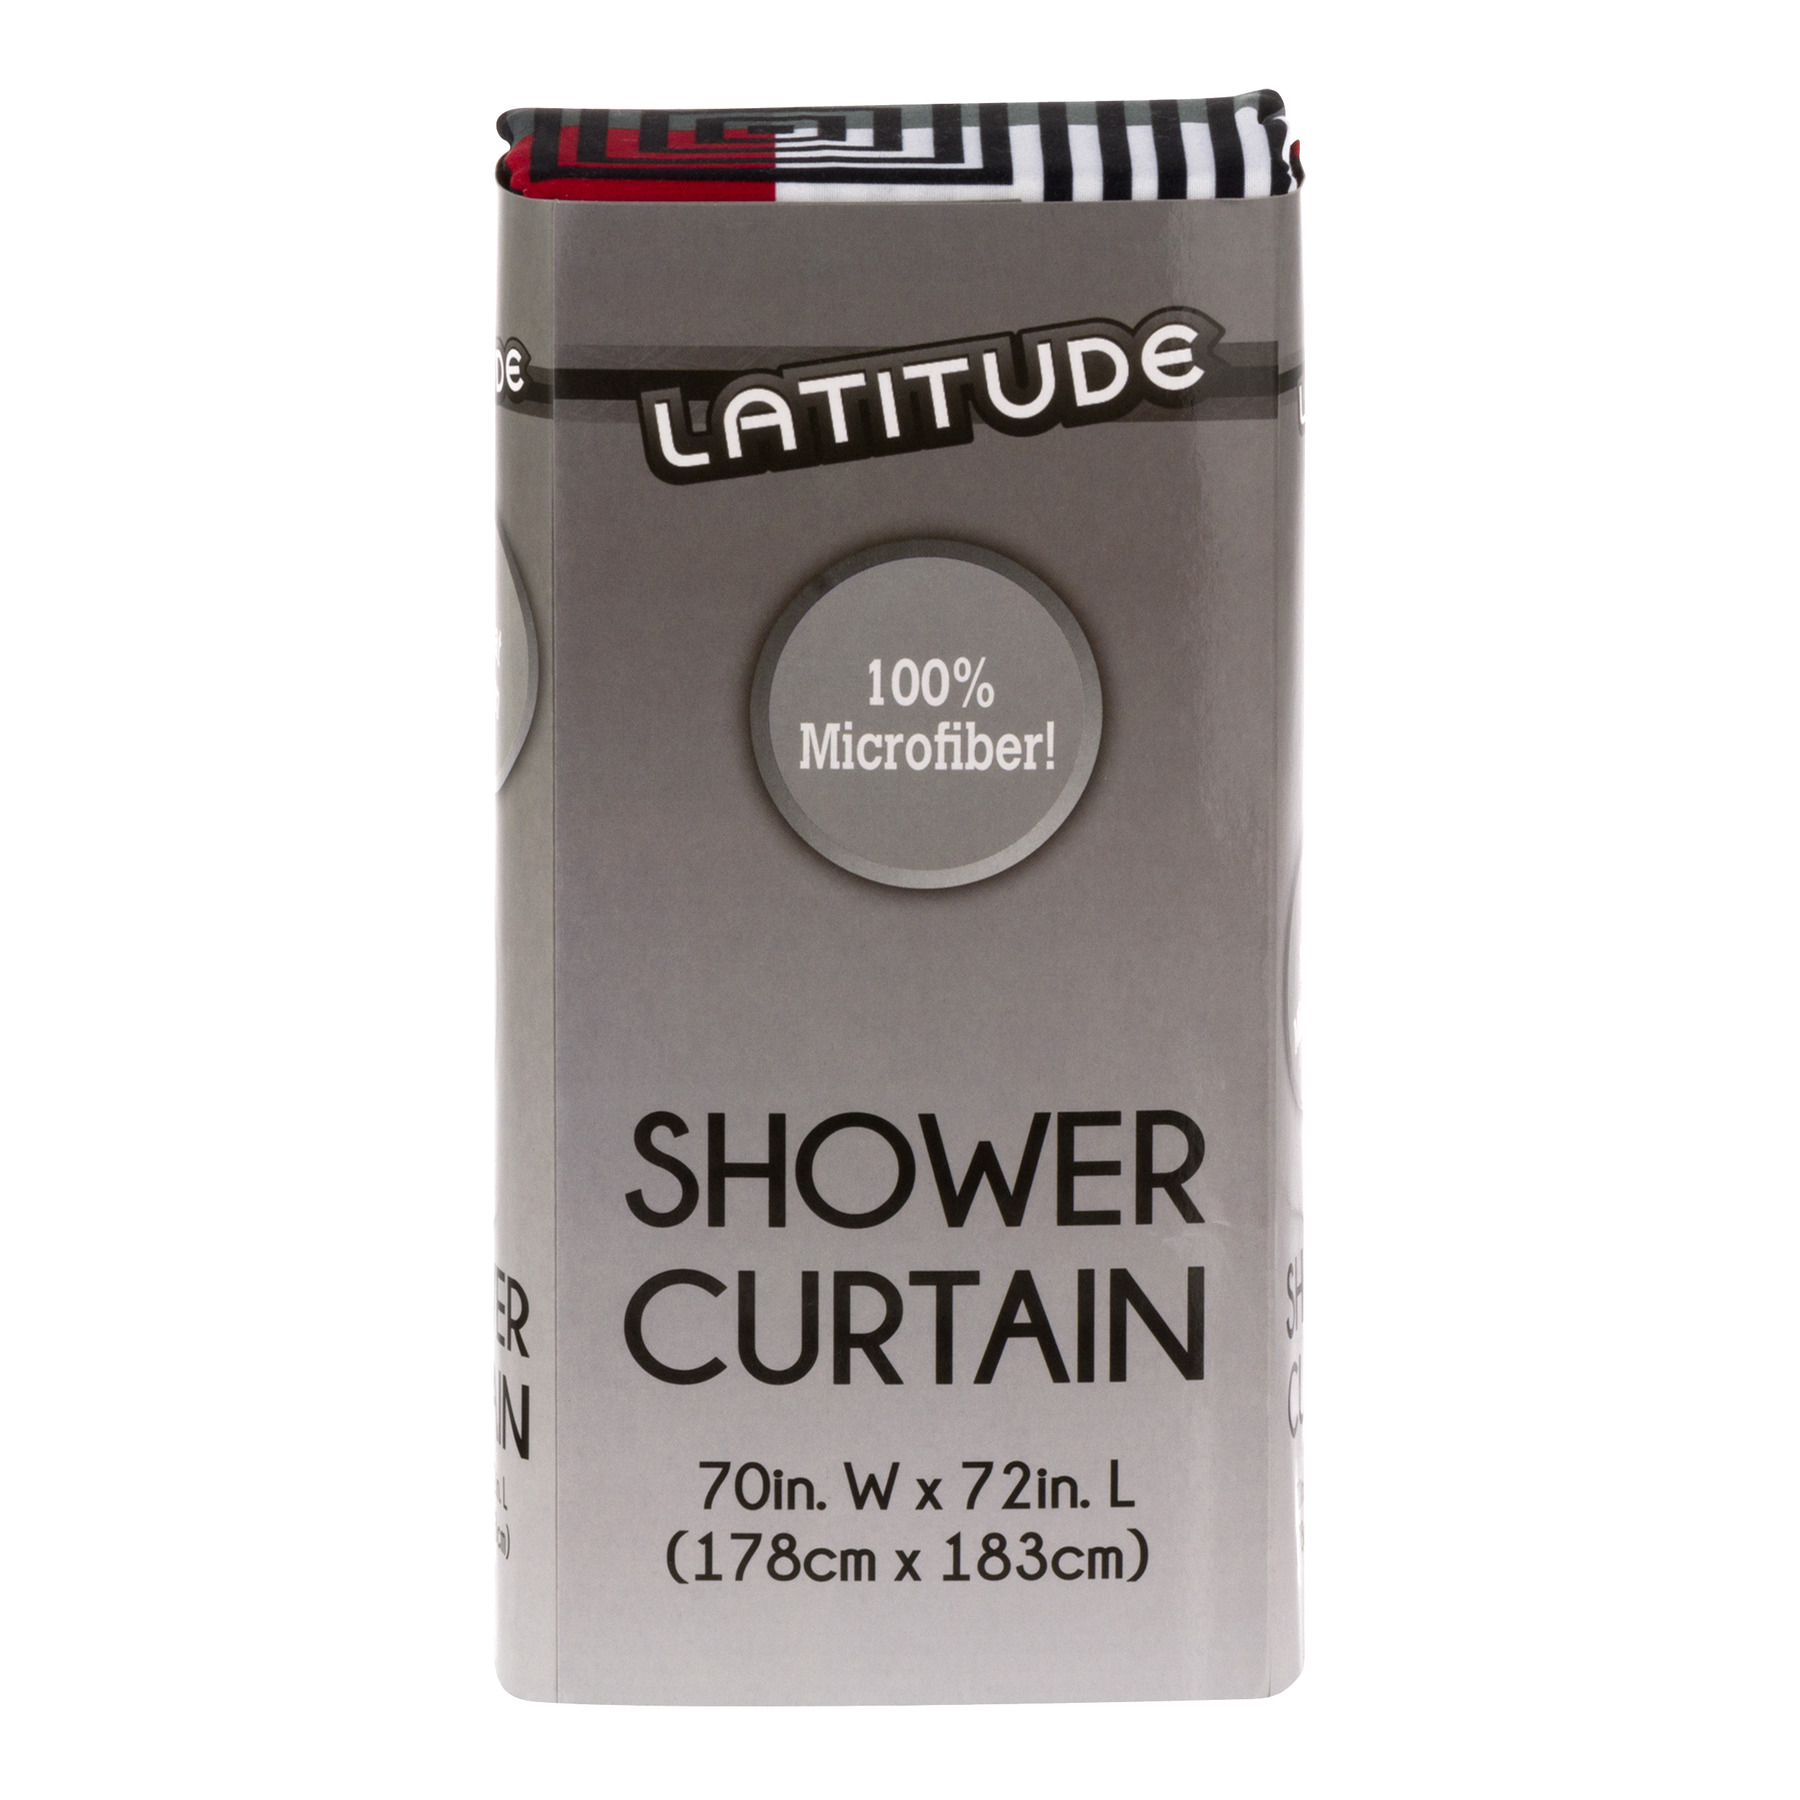 Latitude 100% Microfiber Shower Curtain, Multicolor, 1.0 CT